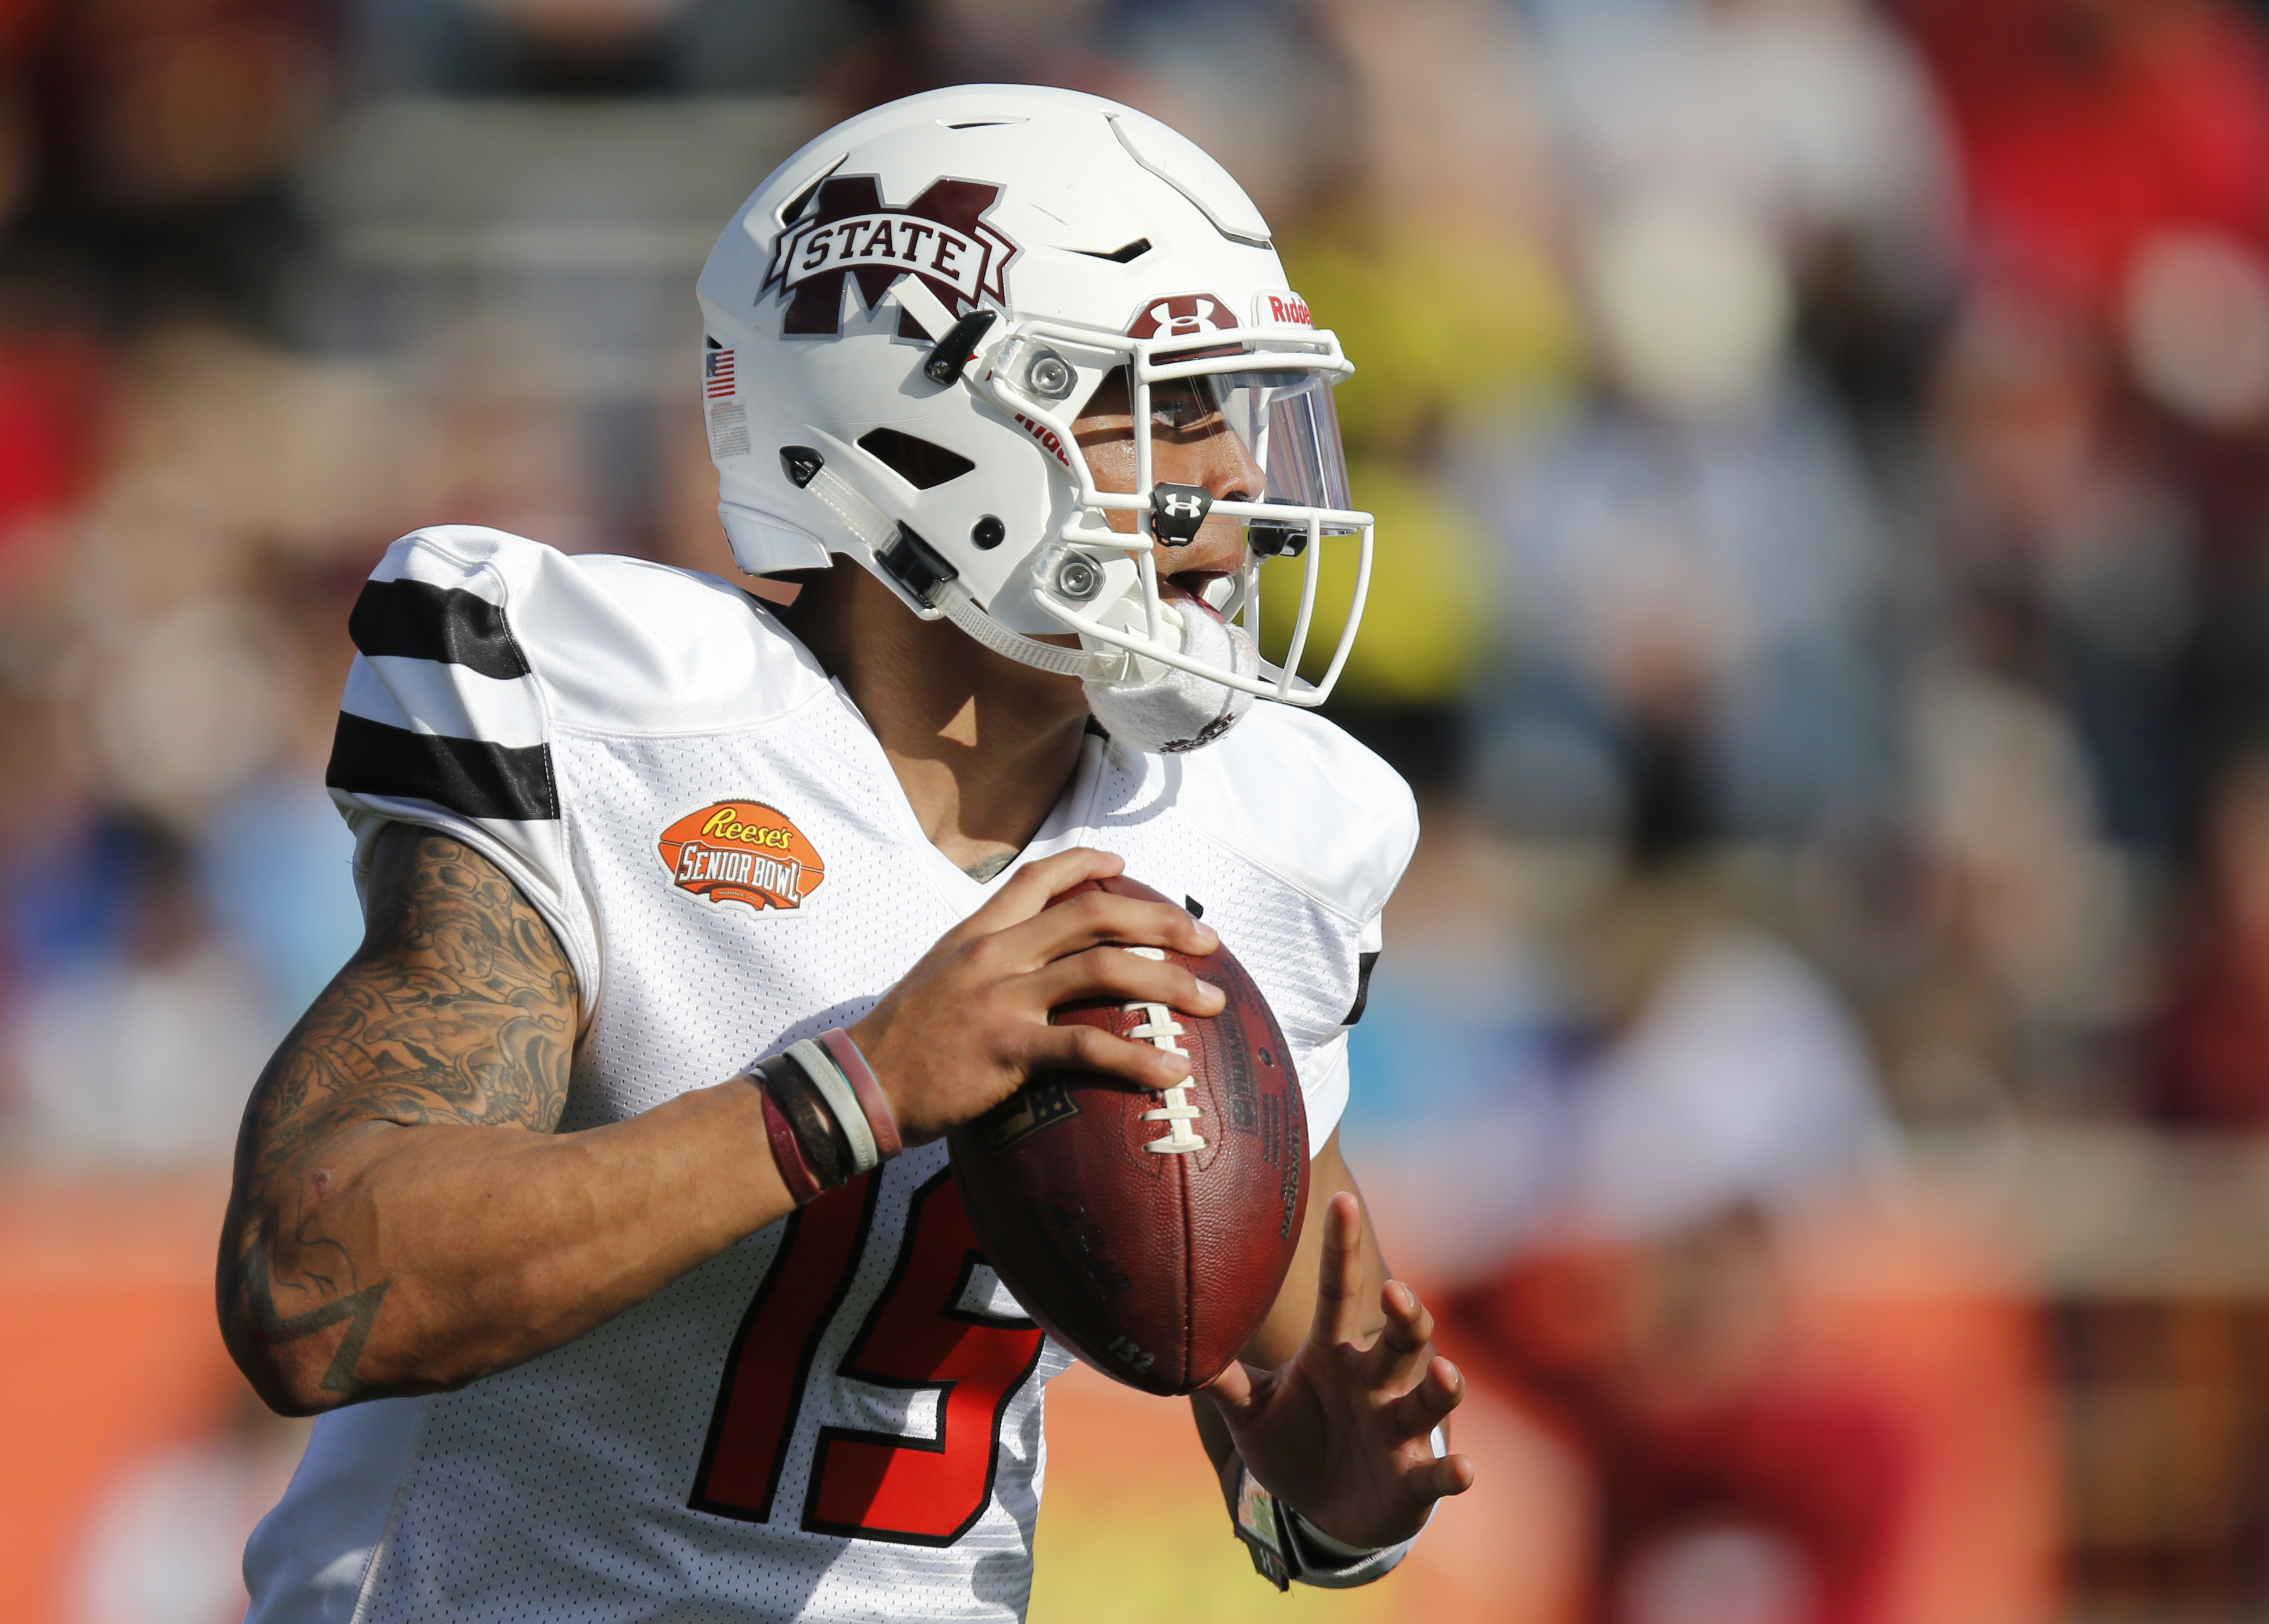 FILE - In this Jan. 30, 2016 file photo, South Team quarterback Dak Prescott, of Mississippi State, looks to pass during the first half of the Senior Bowl NCAA college football game, in Mobile, Ala. Prescott and about 15 other Mississippi State players wo